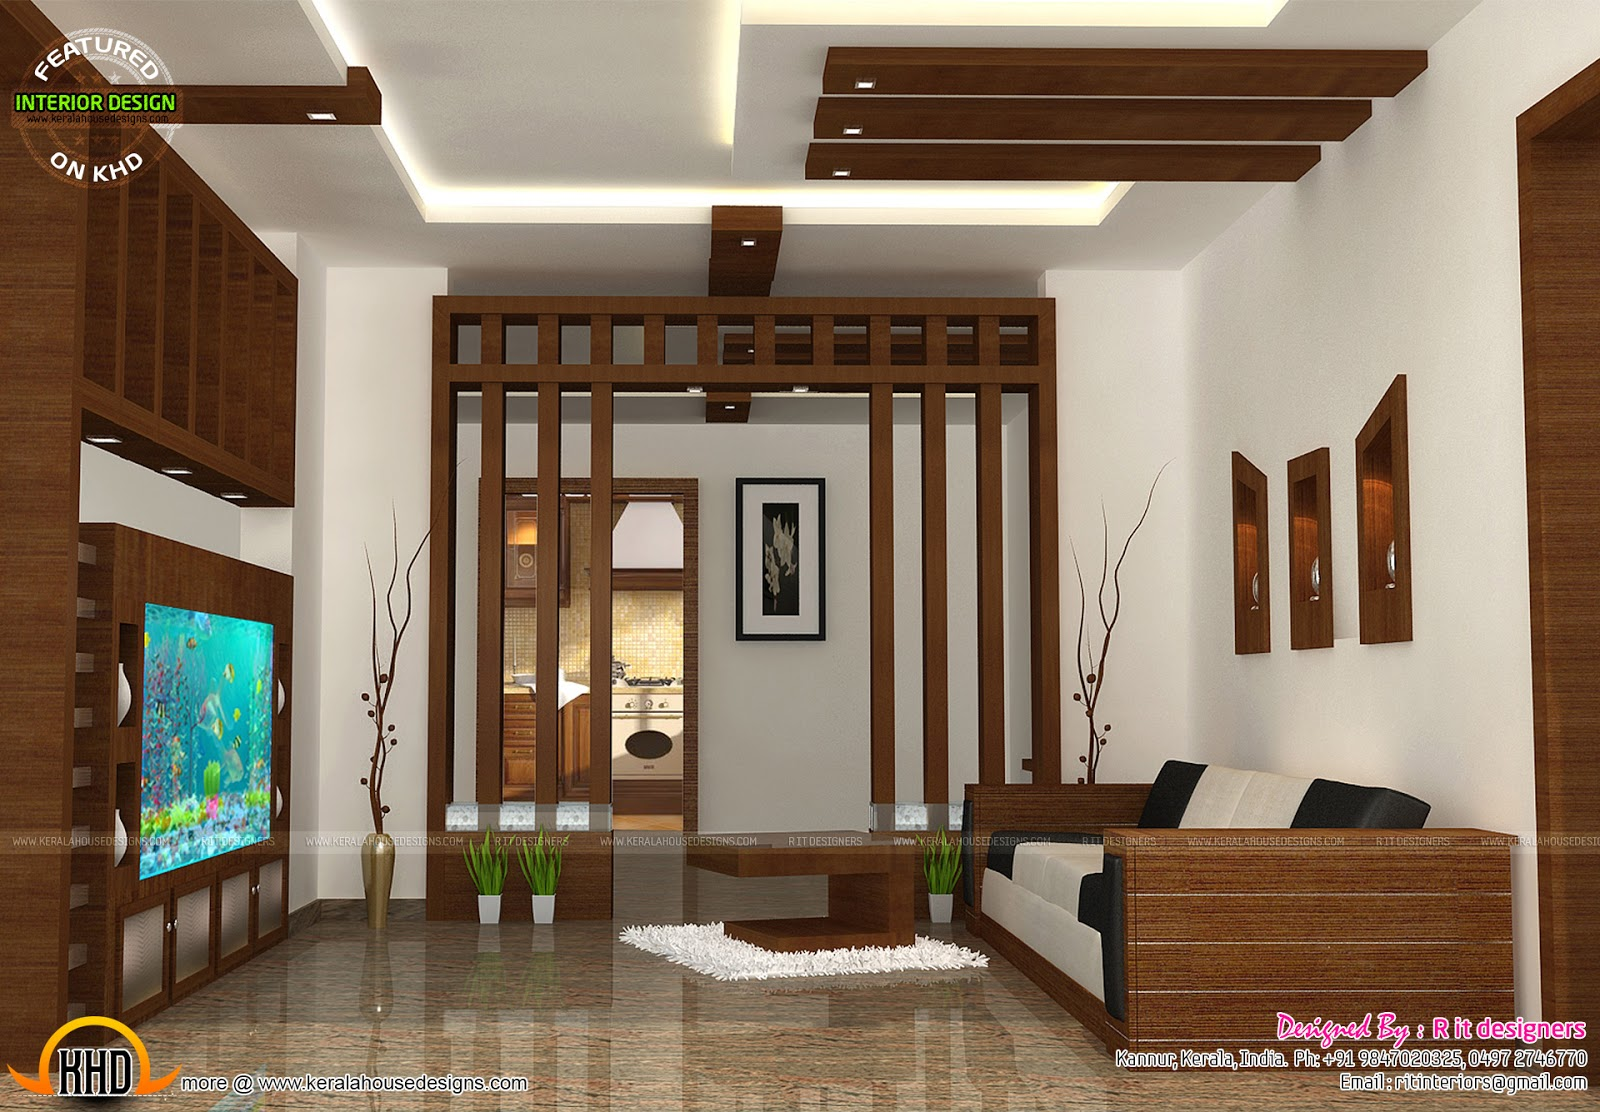 Wooden finish interiors kerala home design and floor plans Kerala homes interior design photos